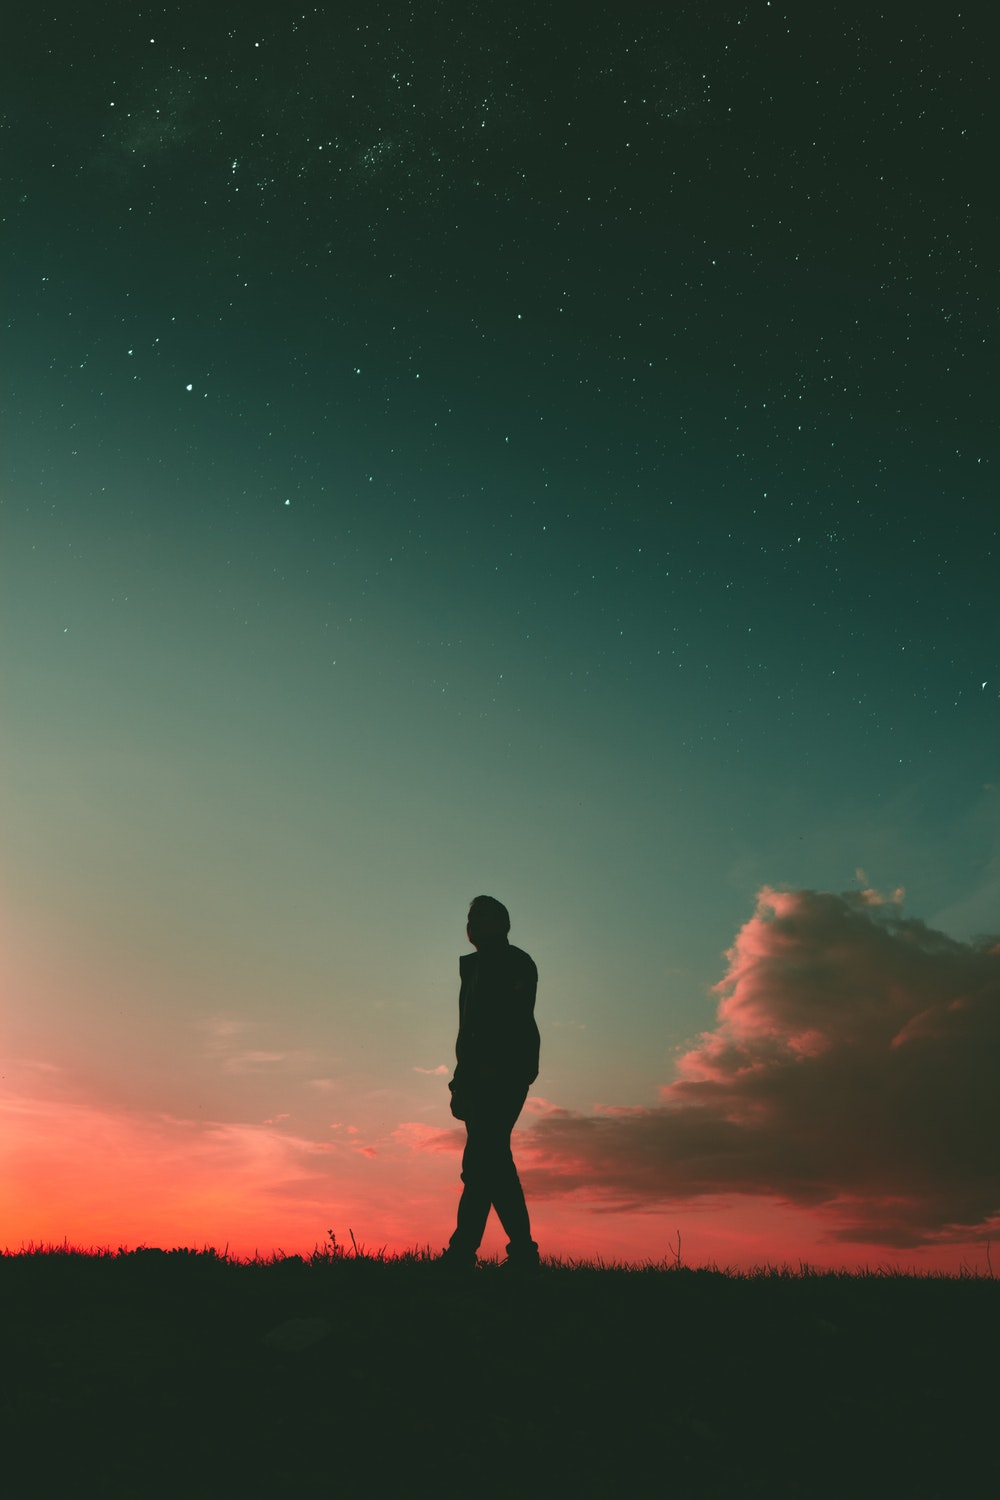 500 Silhouette Pictures [HD] Download Images on Unsplash 1000x1500